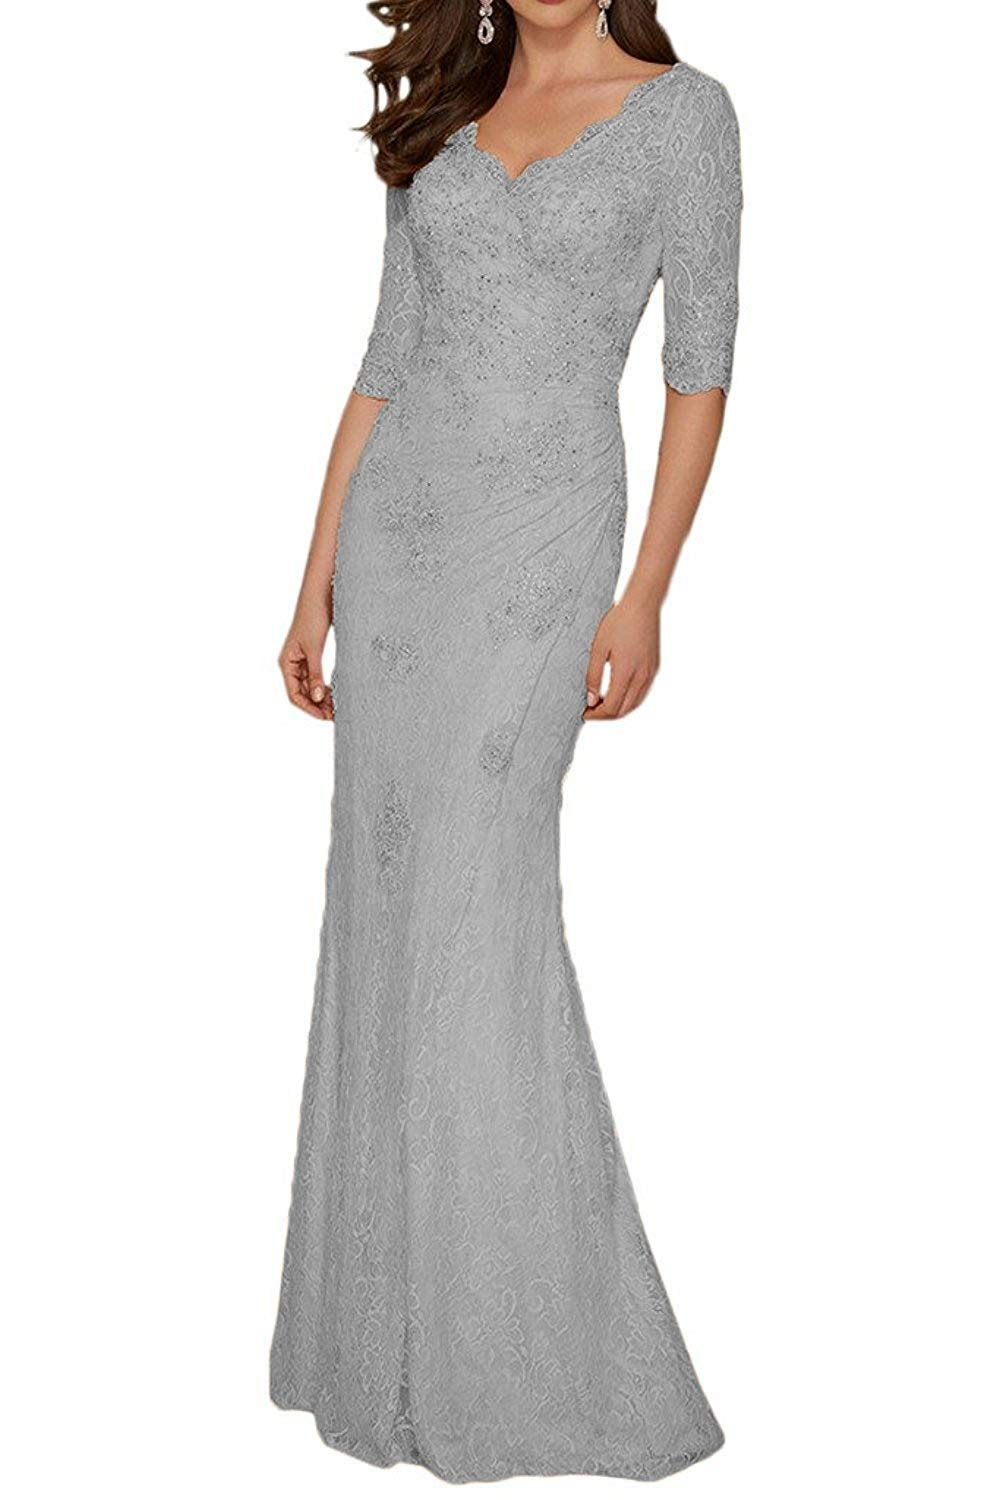 Mother of the Bride Dresses For Groom Wedding Women/'s Formal Gown Half Sleeves